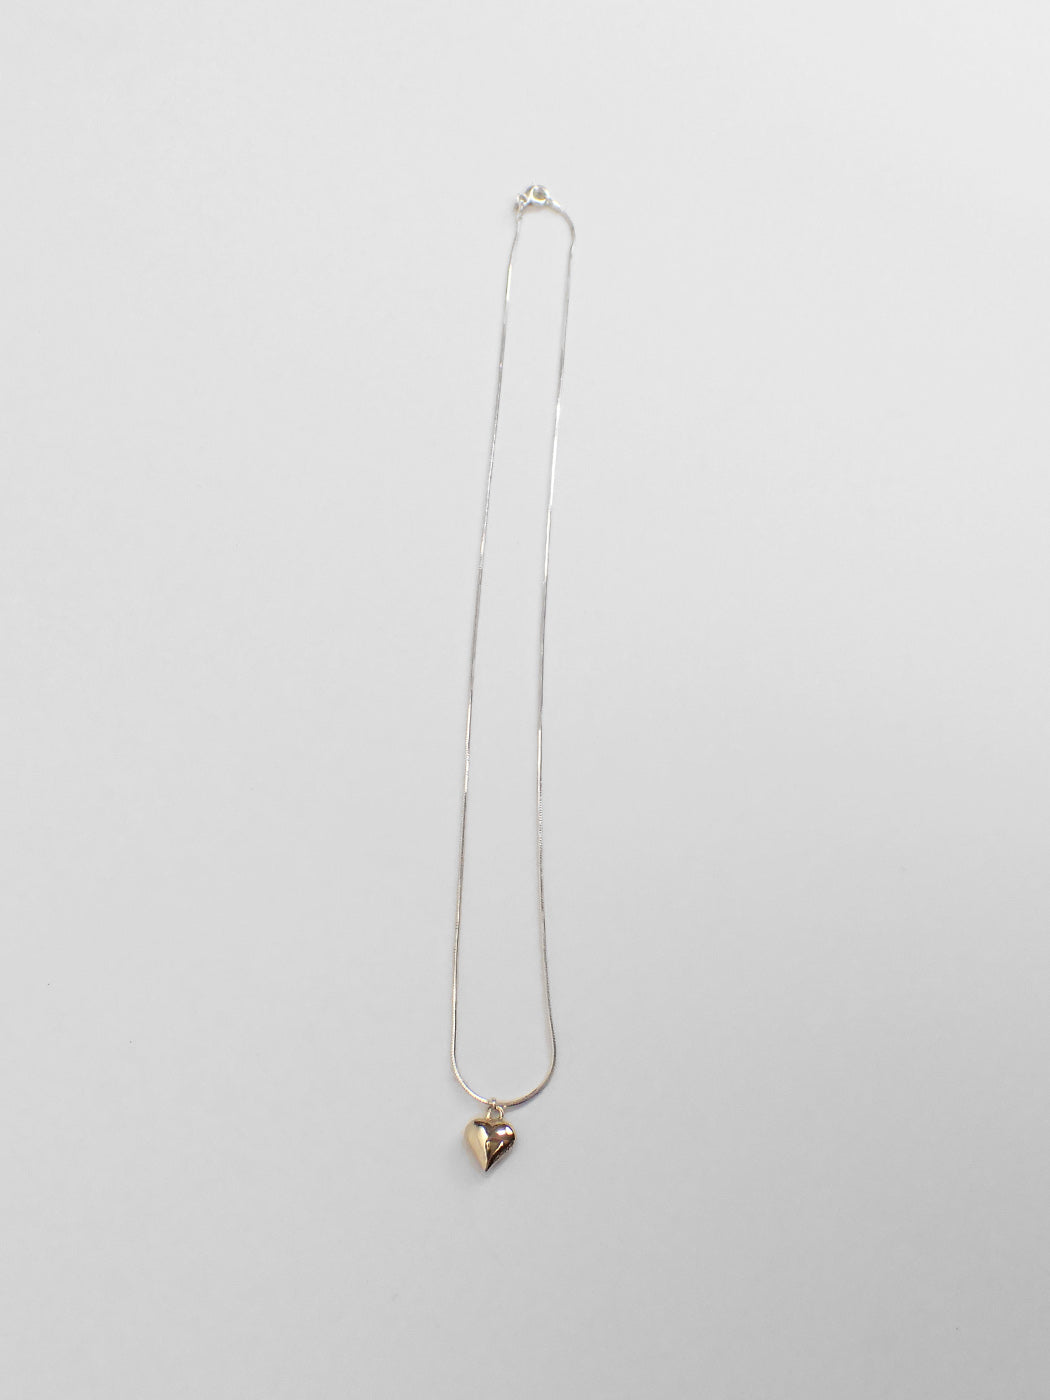 Petit Paige Necklace / Silver & Brass